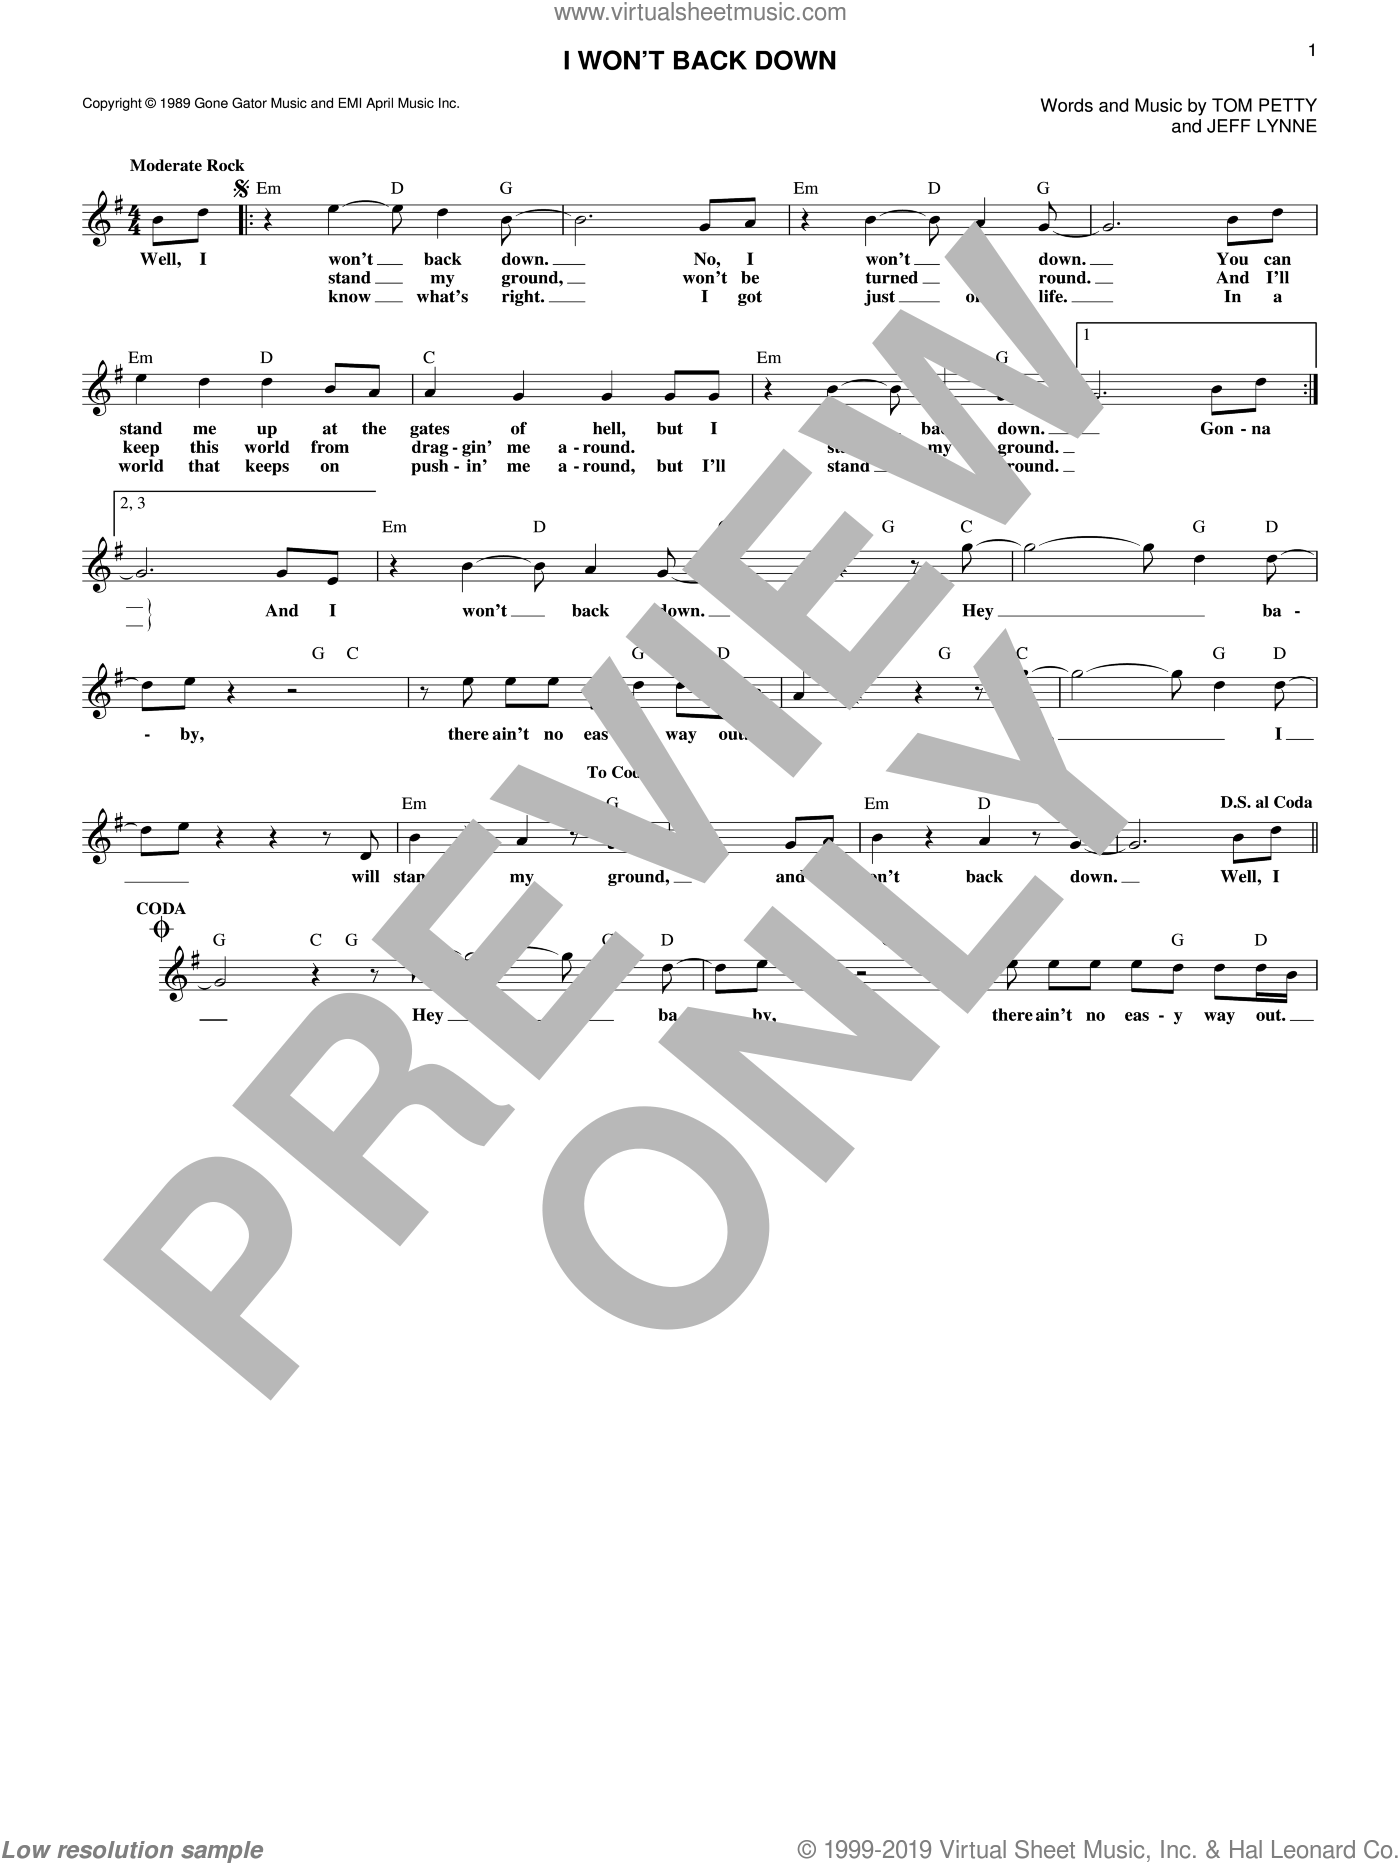 I Won't Back Down sheet music for voice and other instruments (fake book) by Tom Petty and Jeff Lynne. Score Image Preview.